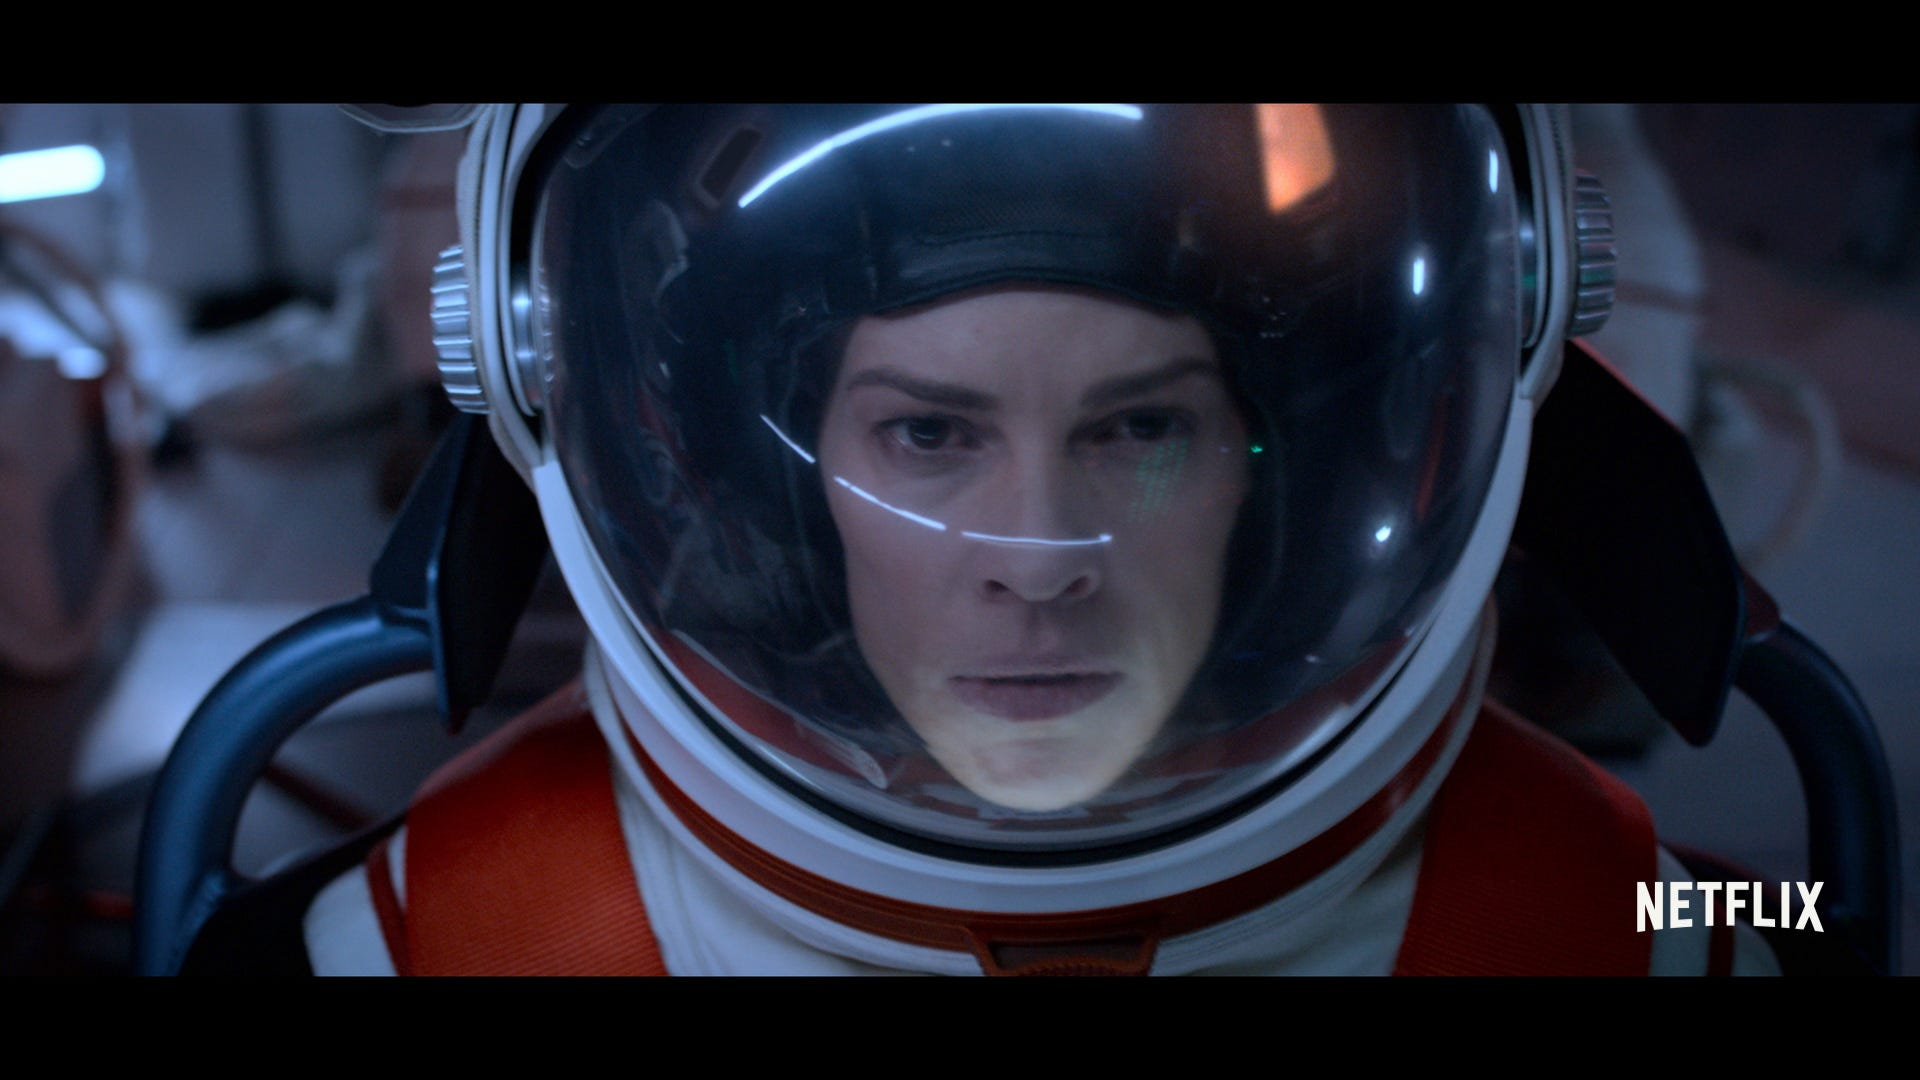 Netflix Drops Trailer for 'Away,' Hilary Swank's New Space Series